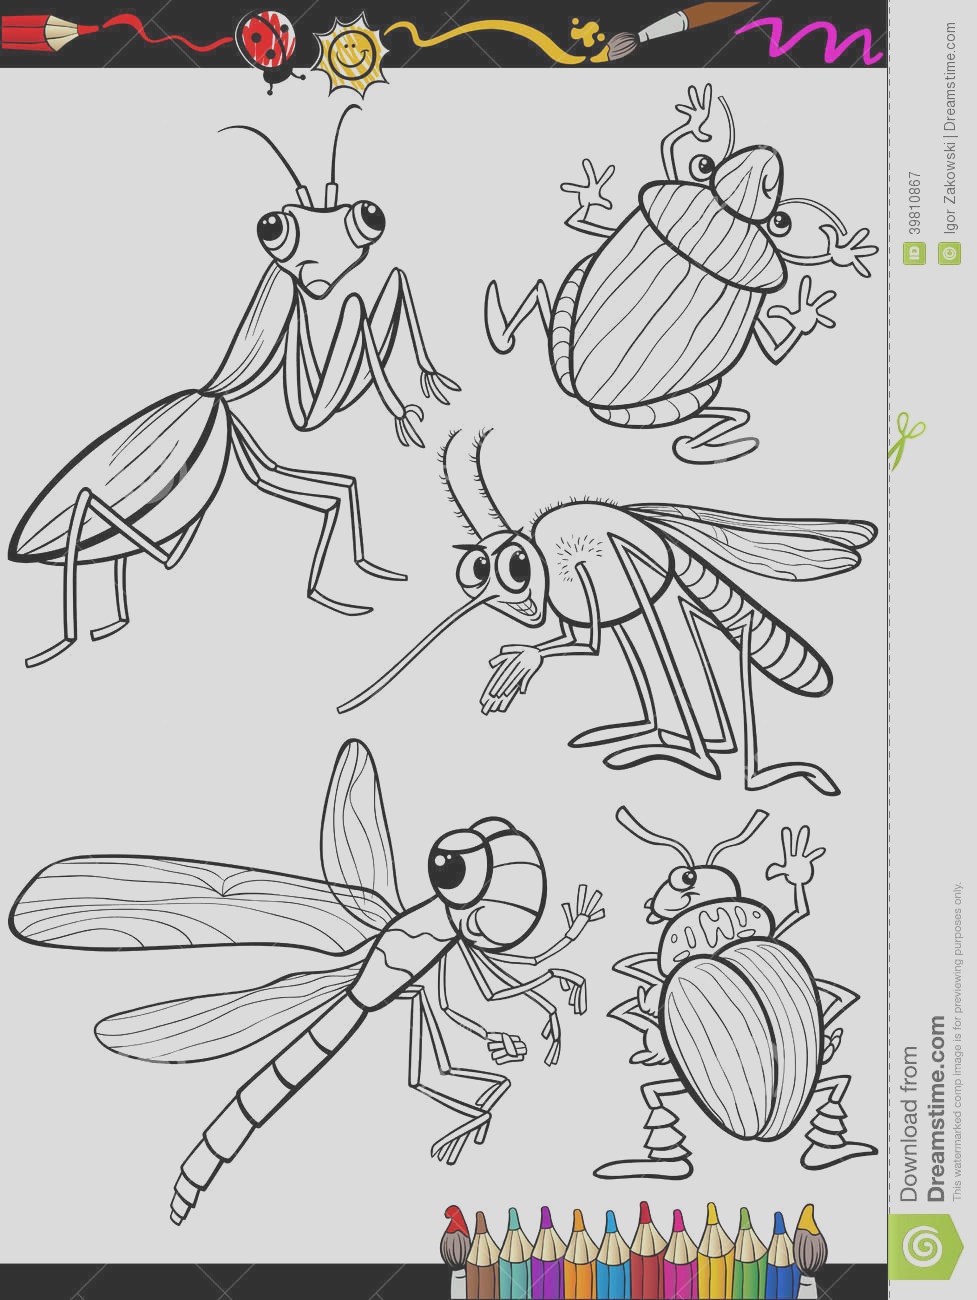 royalty free stock photography cartoon insects set coloring book page illustration black white bugs children image